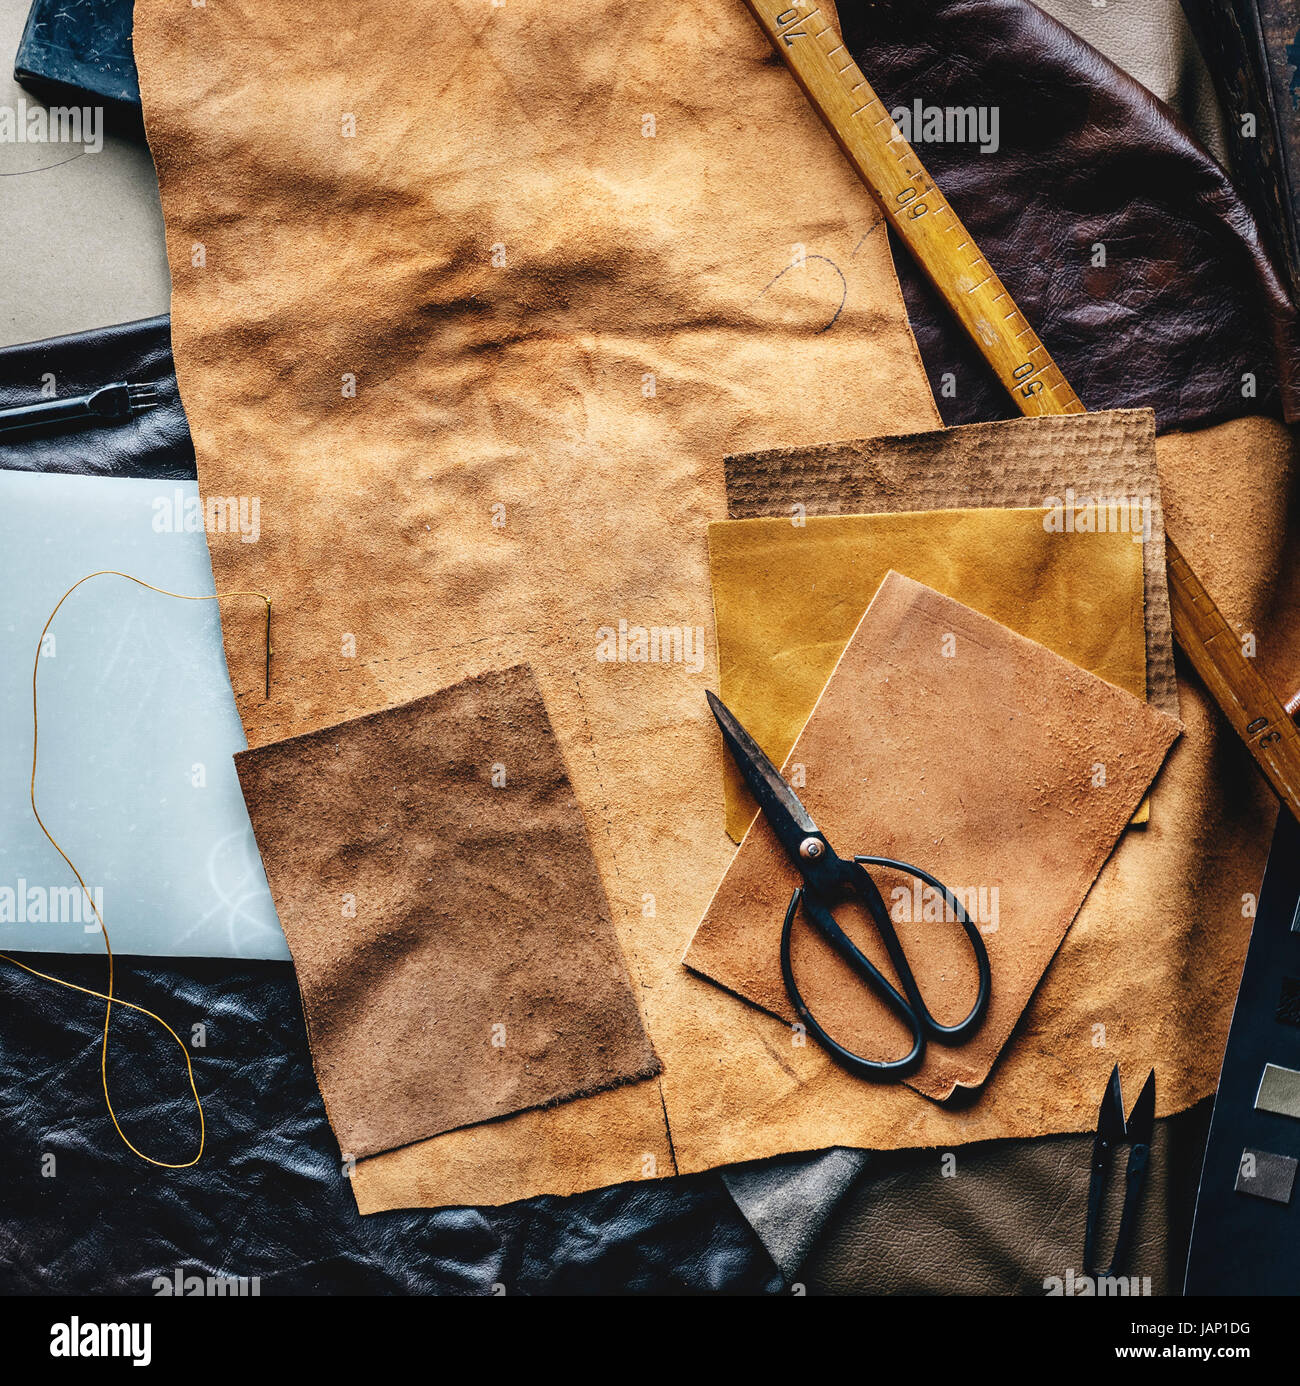 Aerial view of leather crafting with tools Stock Photo